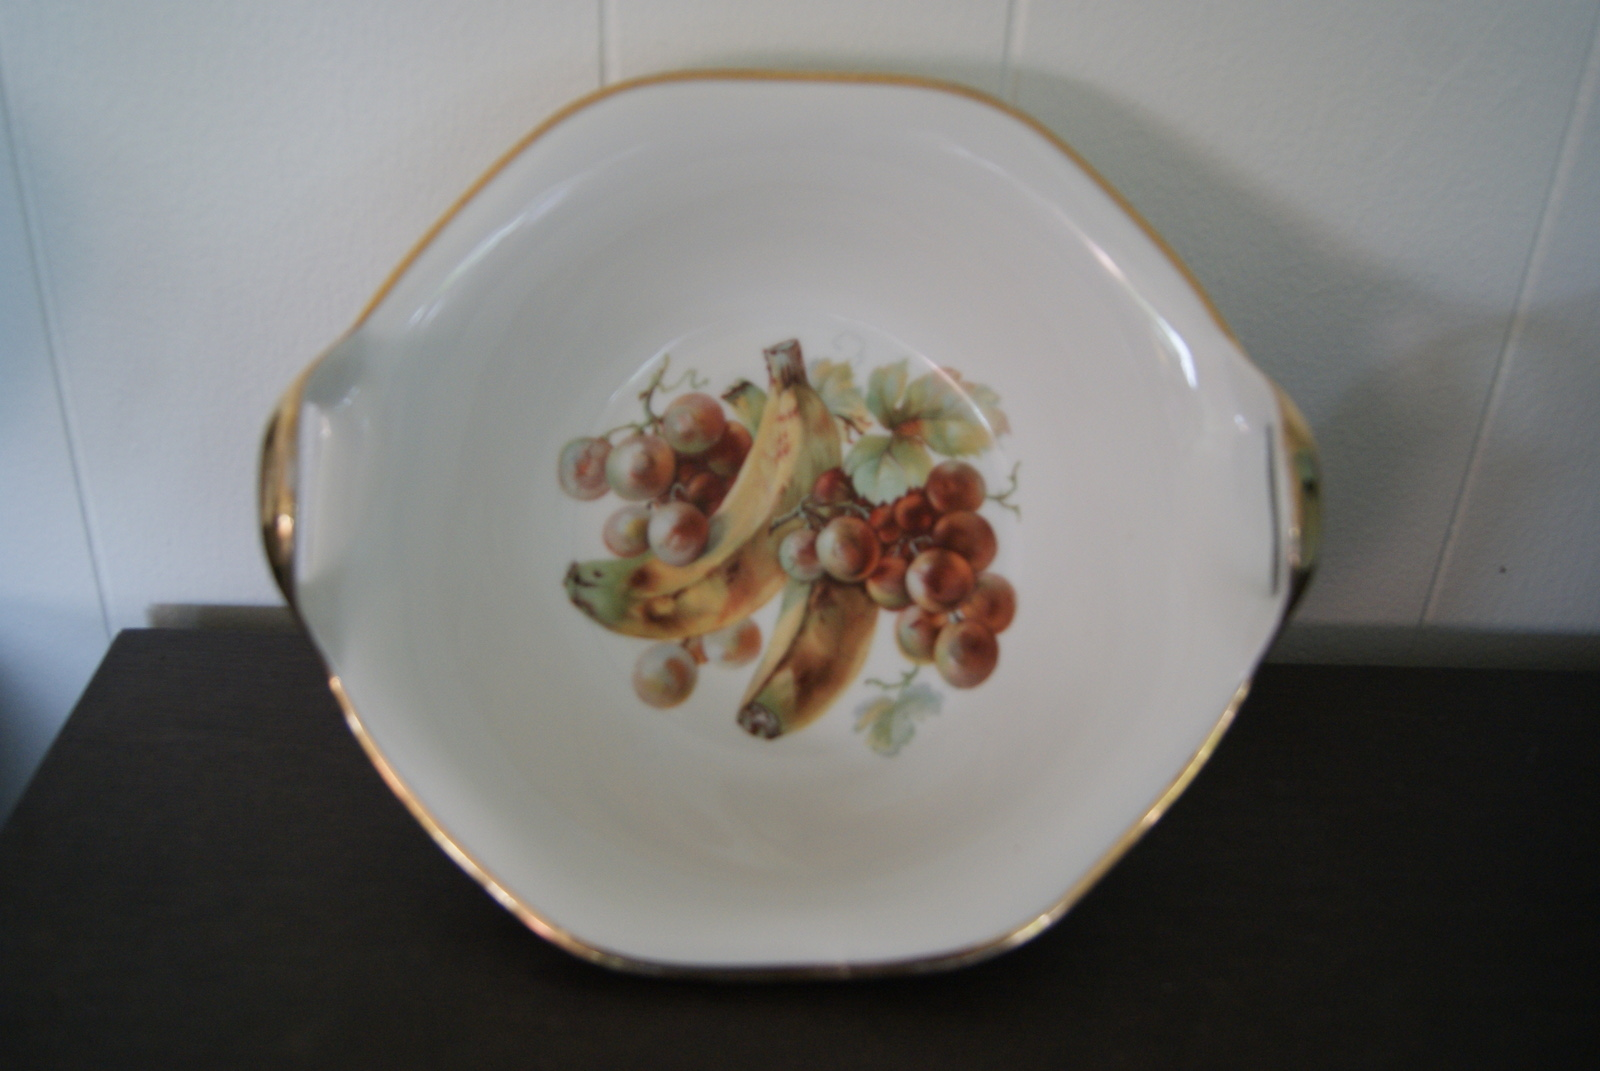 Porsgrund bowl decorated with fruits - grapes and bananas